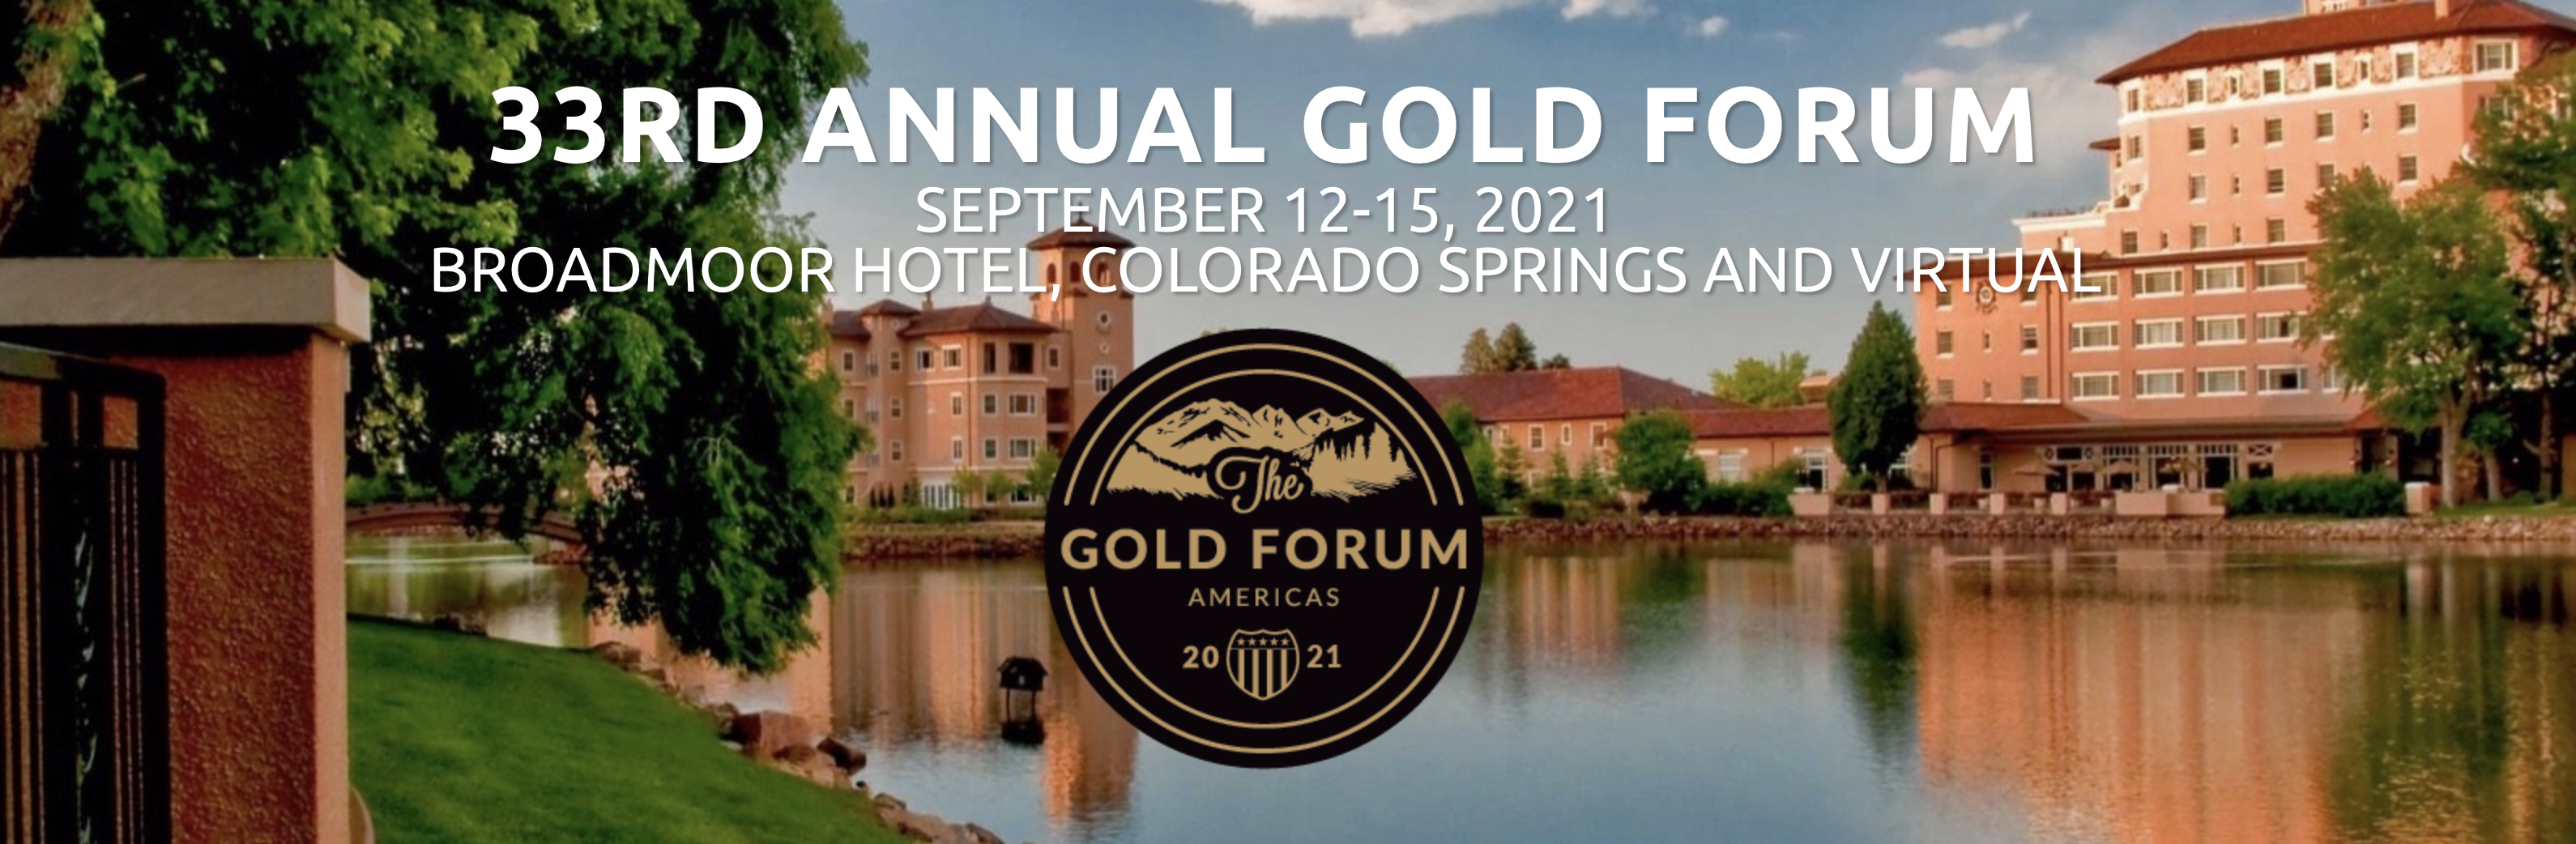 DENVER GOLD GROUP : 33rd Annual Gold Forum